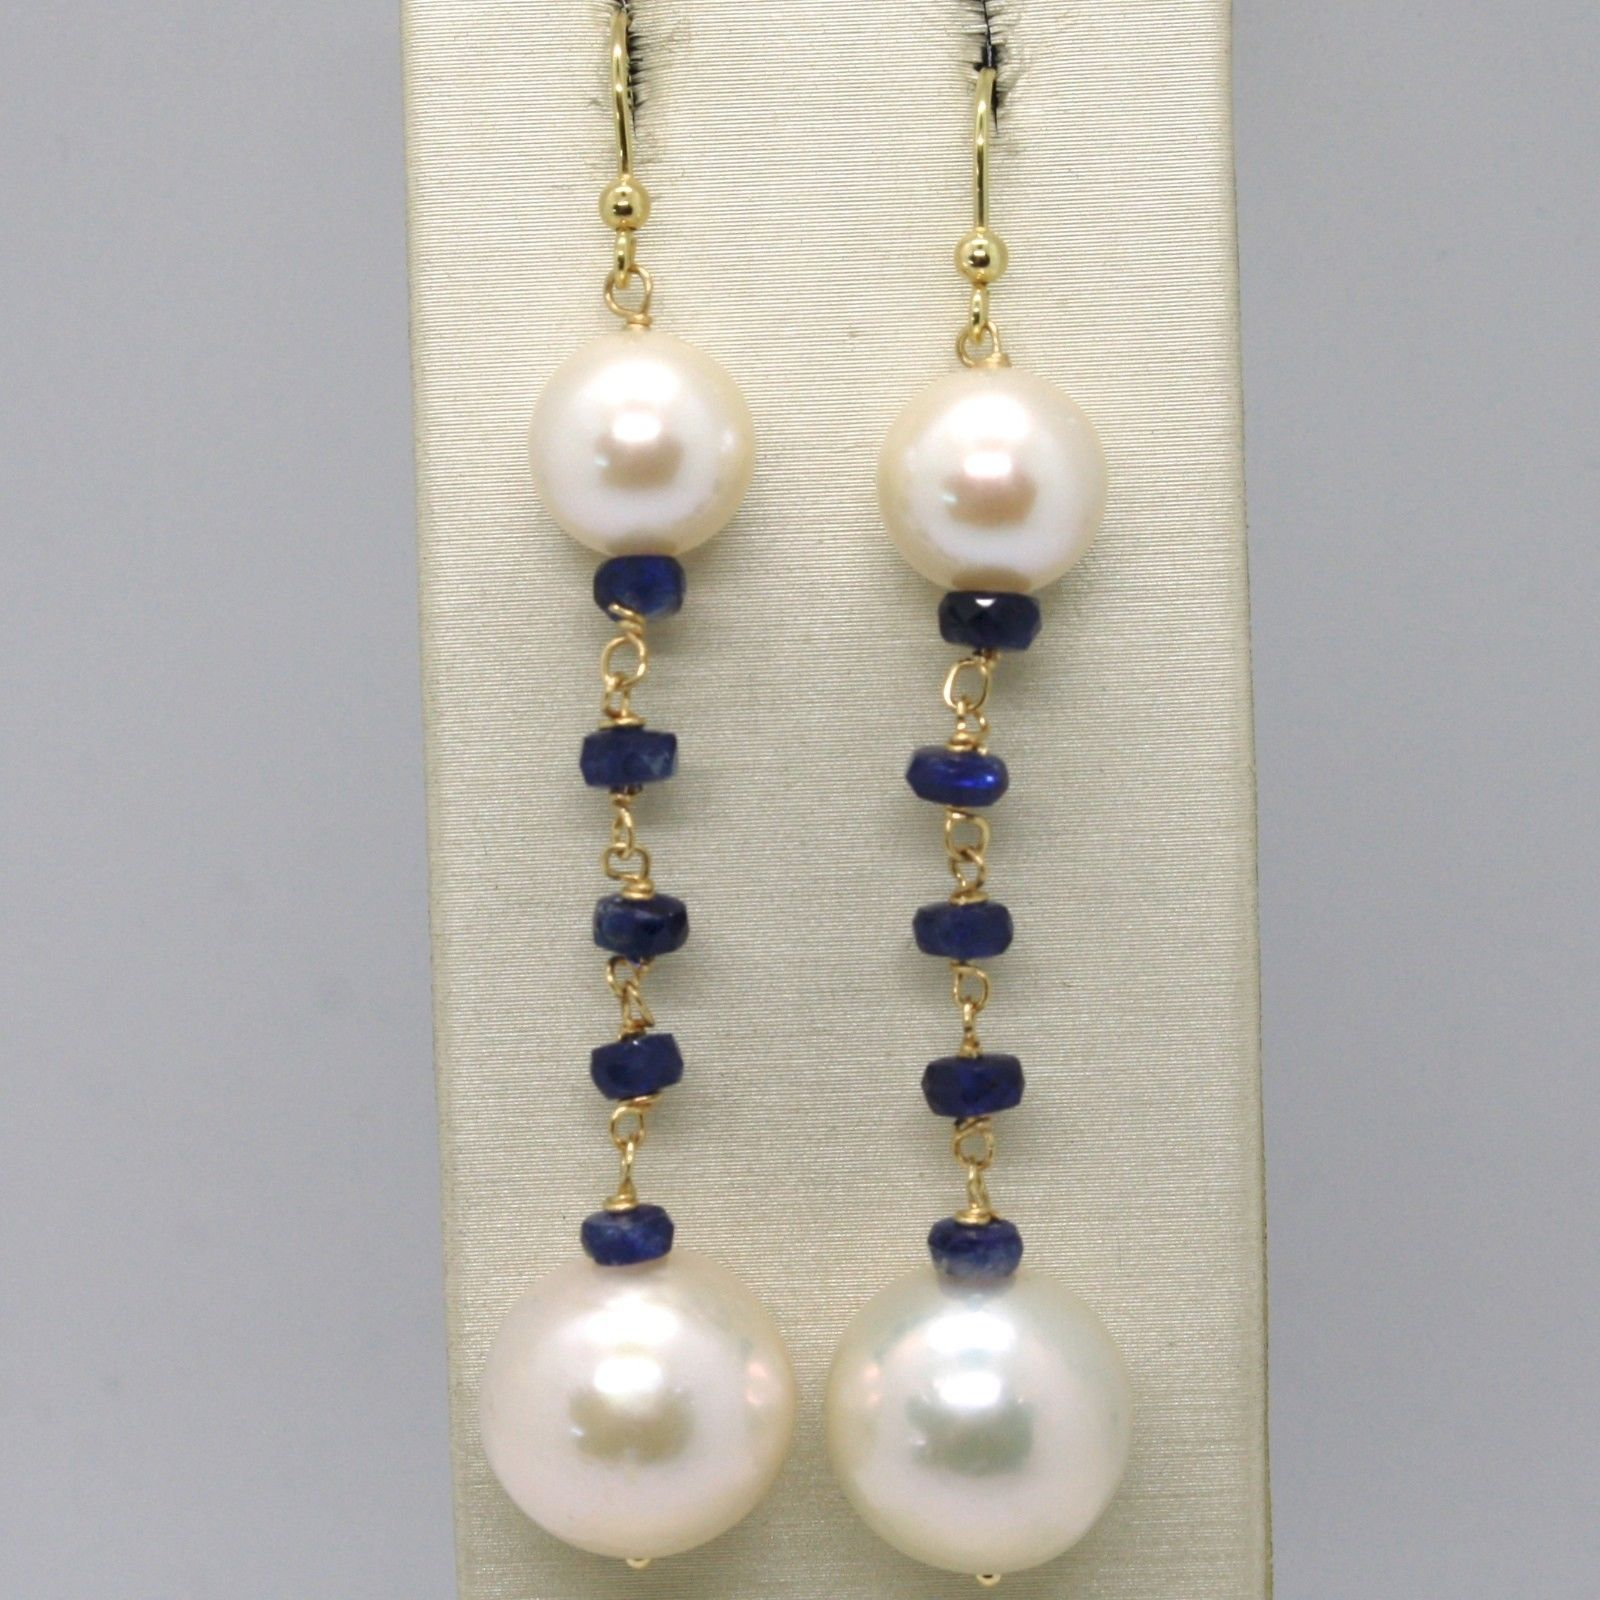 18K YELLOW GOLD PENDANT EARRINGS WITH FACETED SAPPHIRE & PEARL, MADE IN ITALY